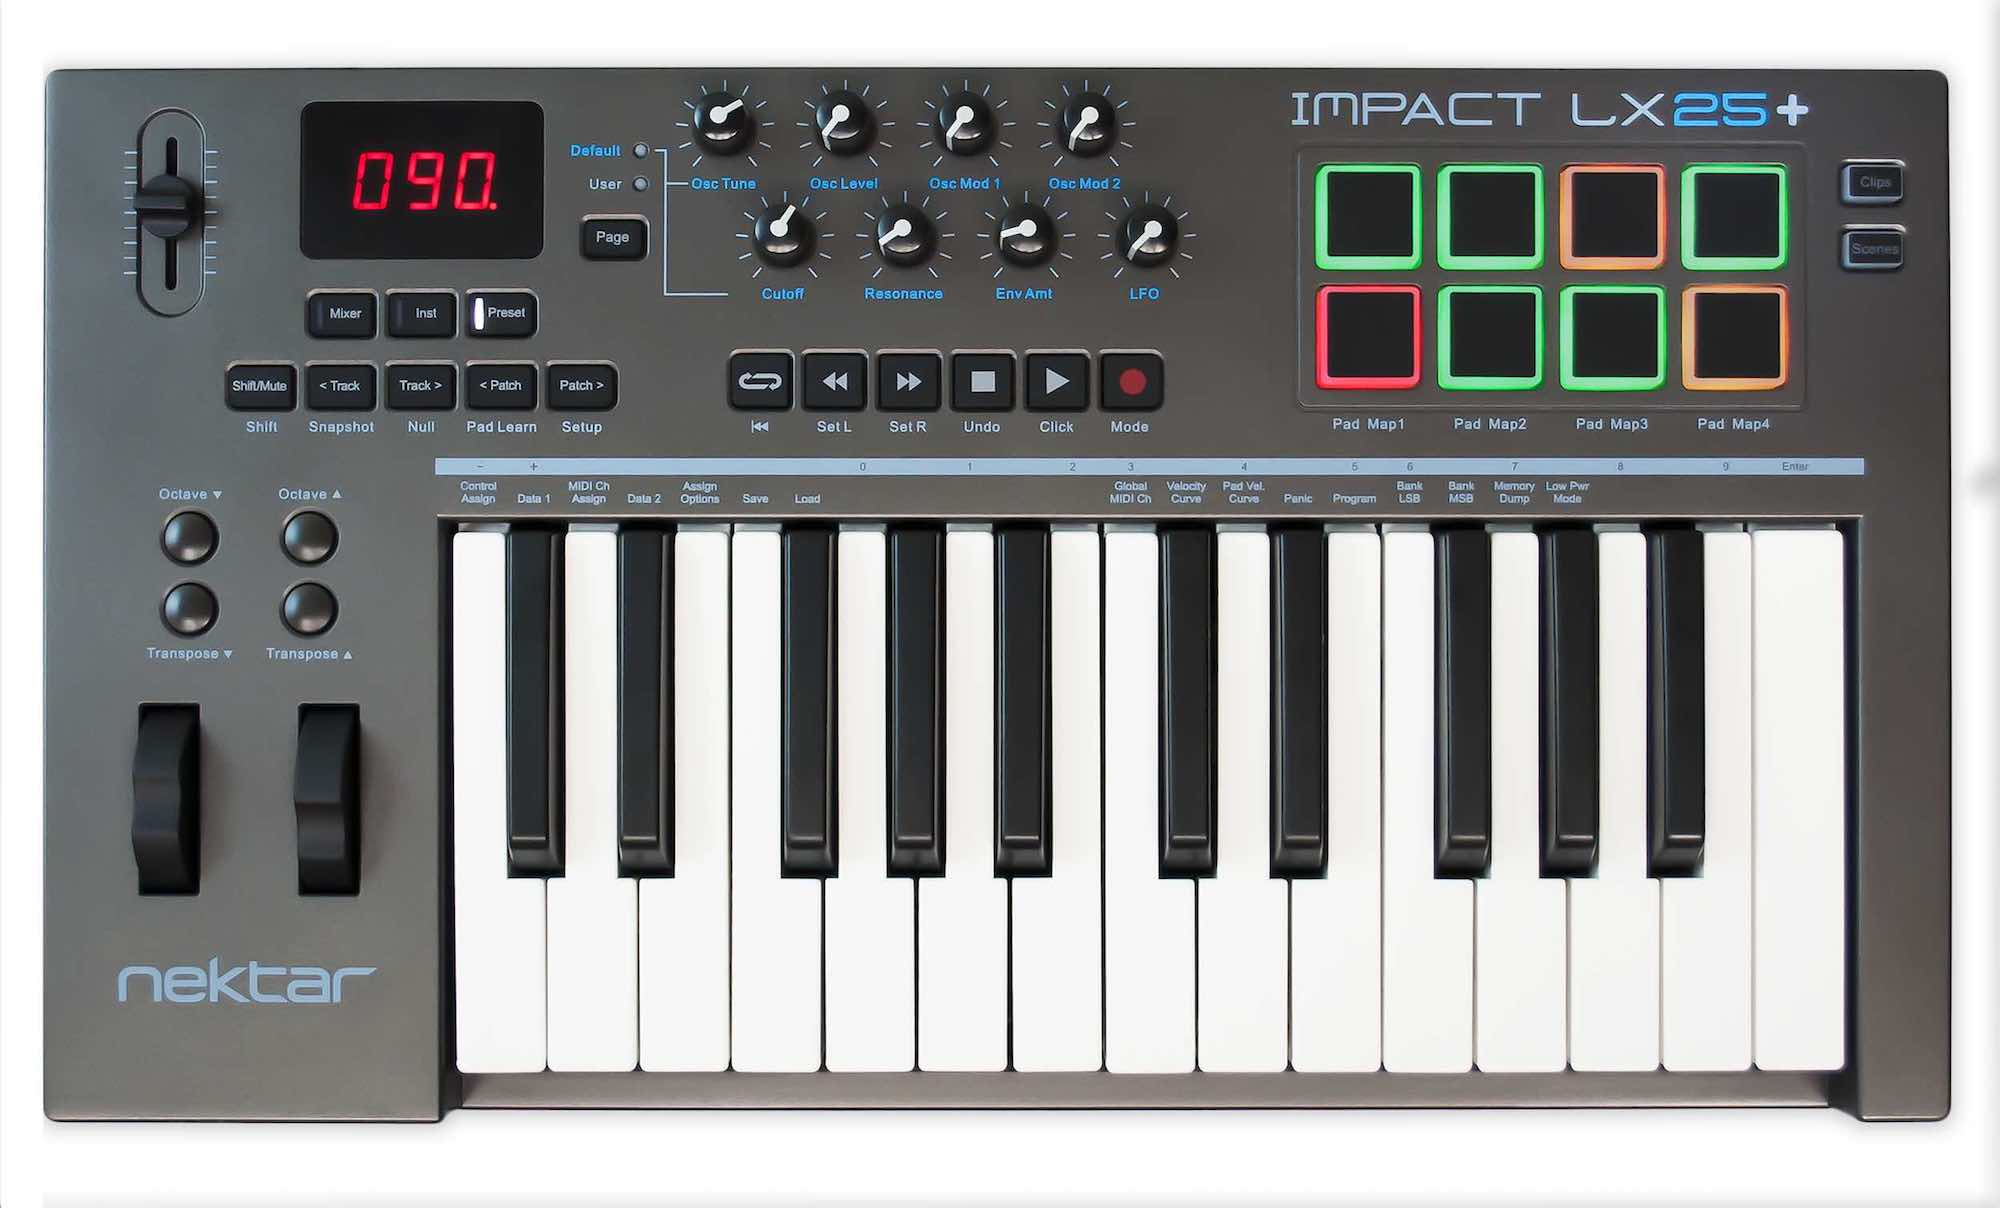 Nektar Impact LX25+ controller MIDI keyboard tastiera DAW hardware music production steinberg production starter kit strumenti musicali daw integration